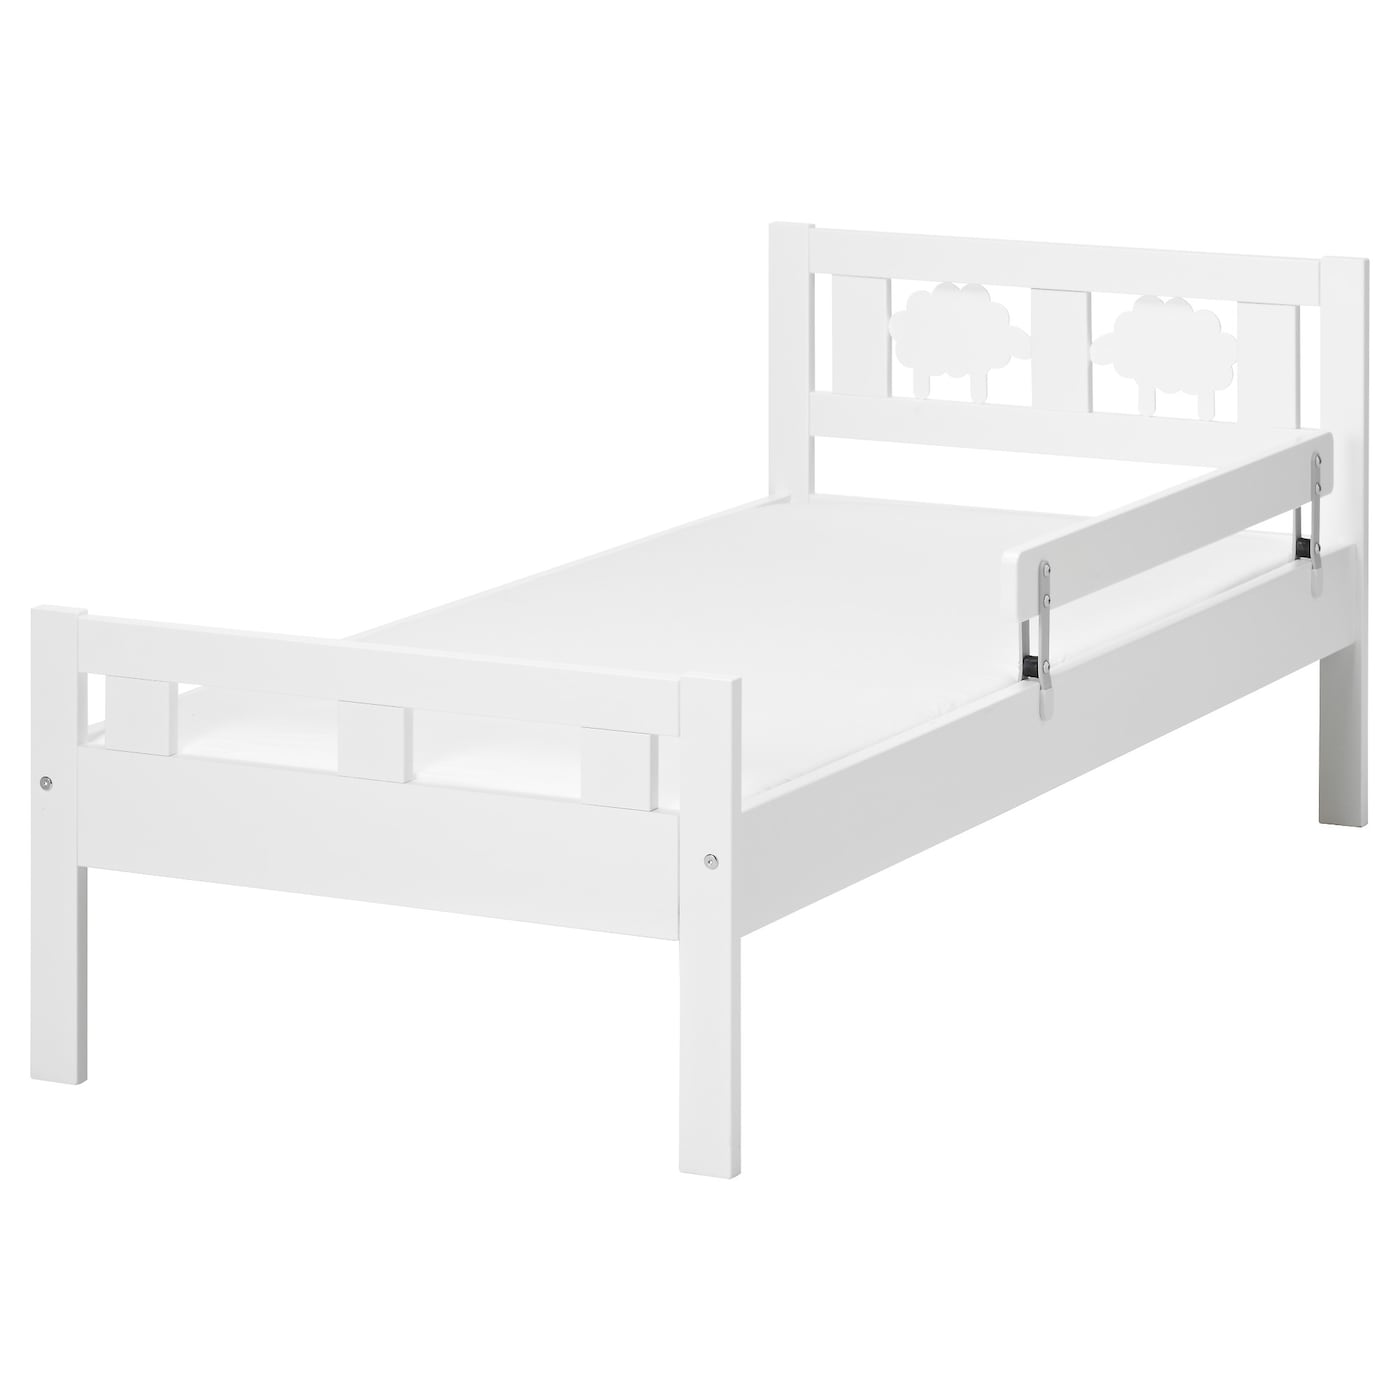 ikea childrens beds kritter bed frame with slatted bed base white 70 x 160 cm 11812